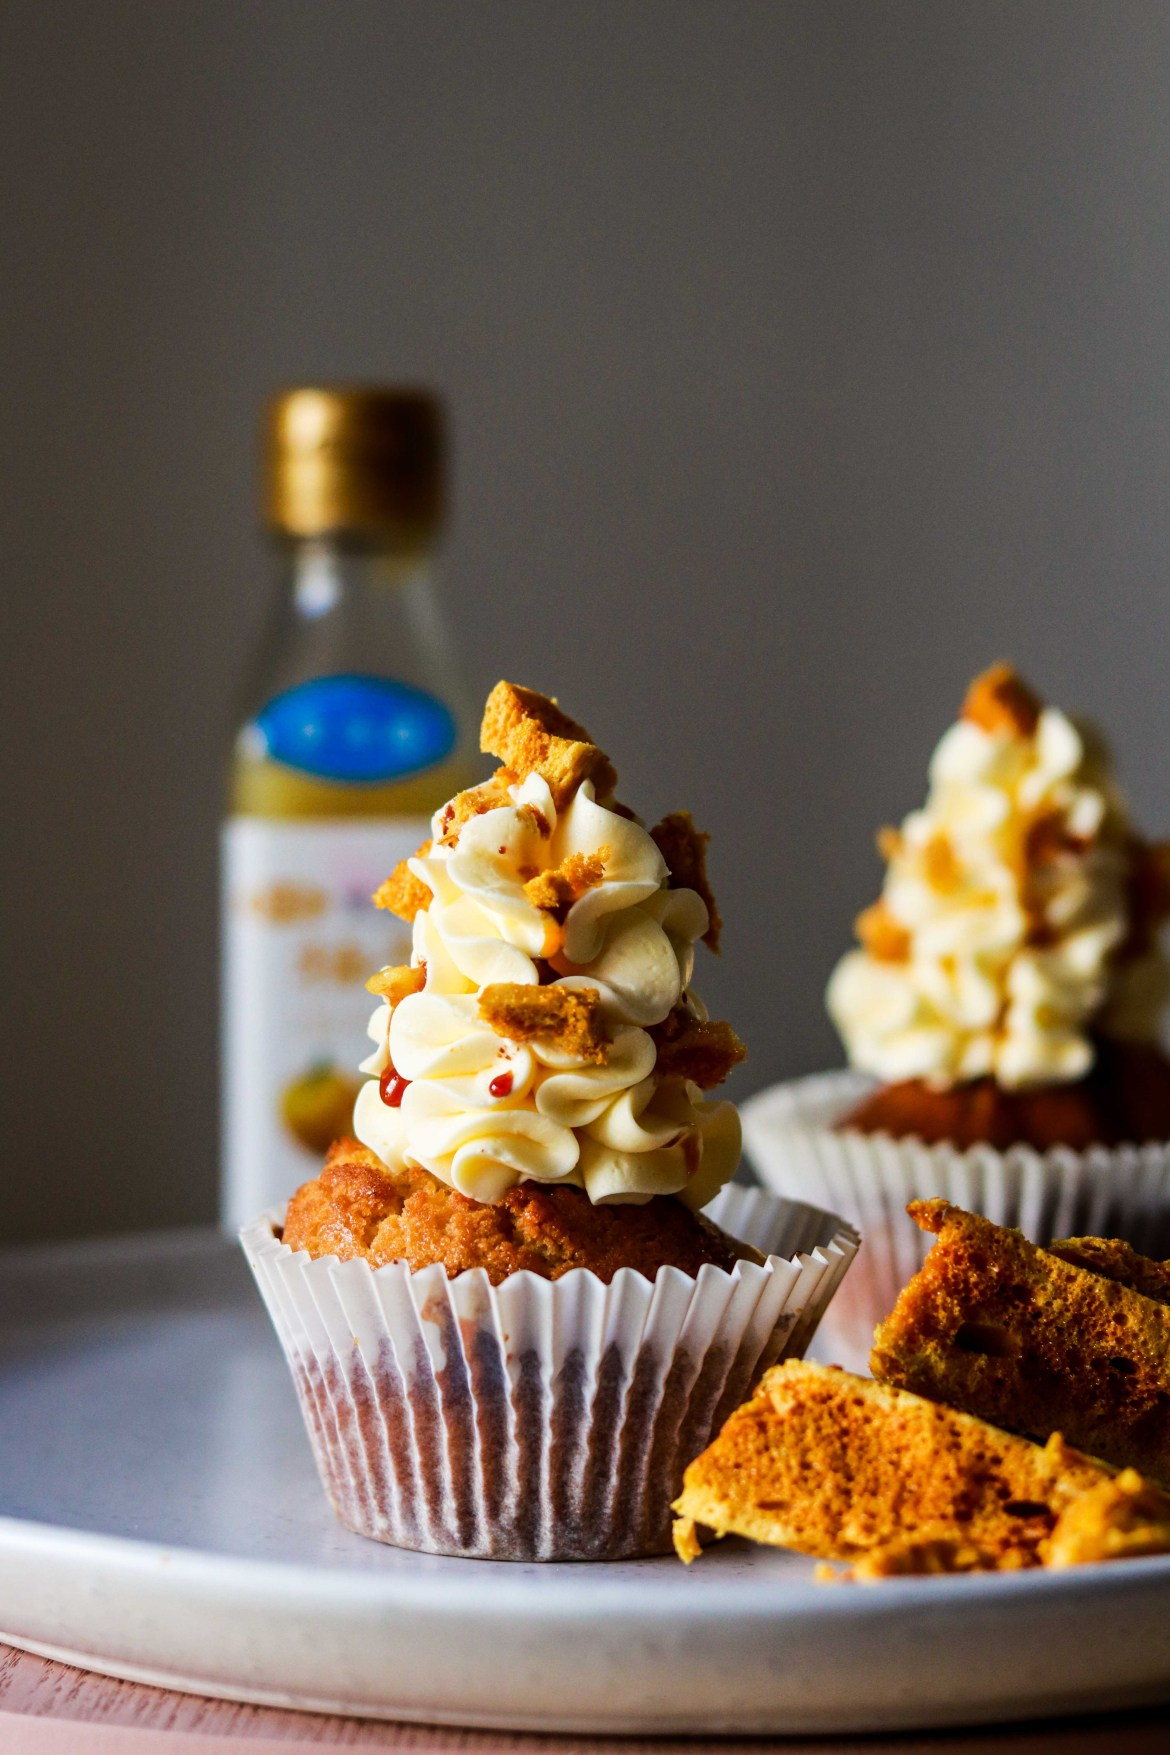 Honey Lemon Cupcake with Yuzu Swiss Meringue Buttercream and Honeycomb1